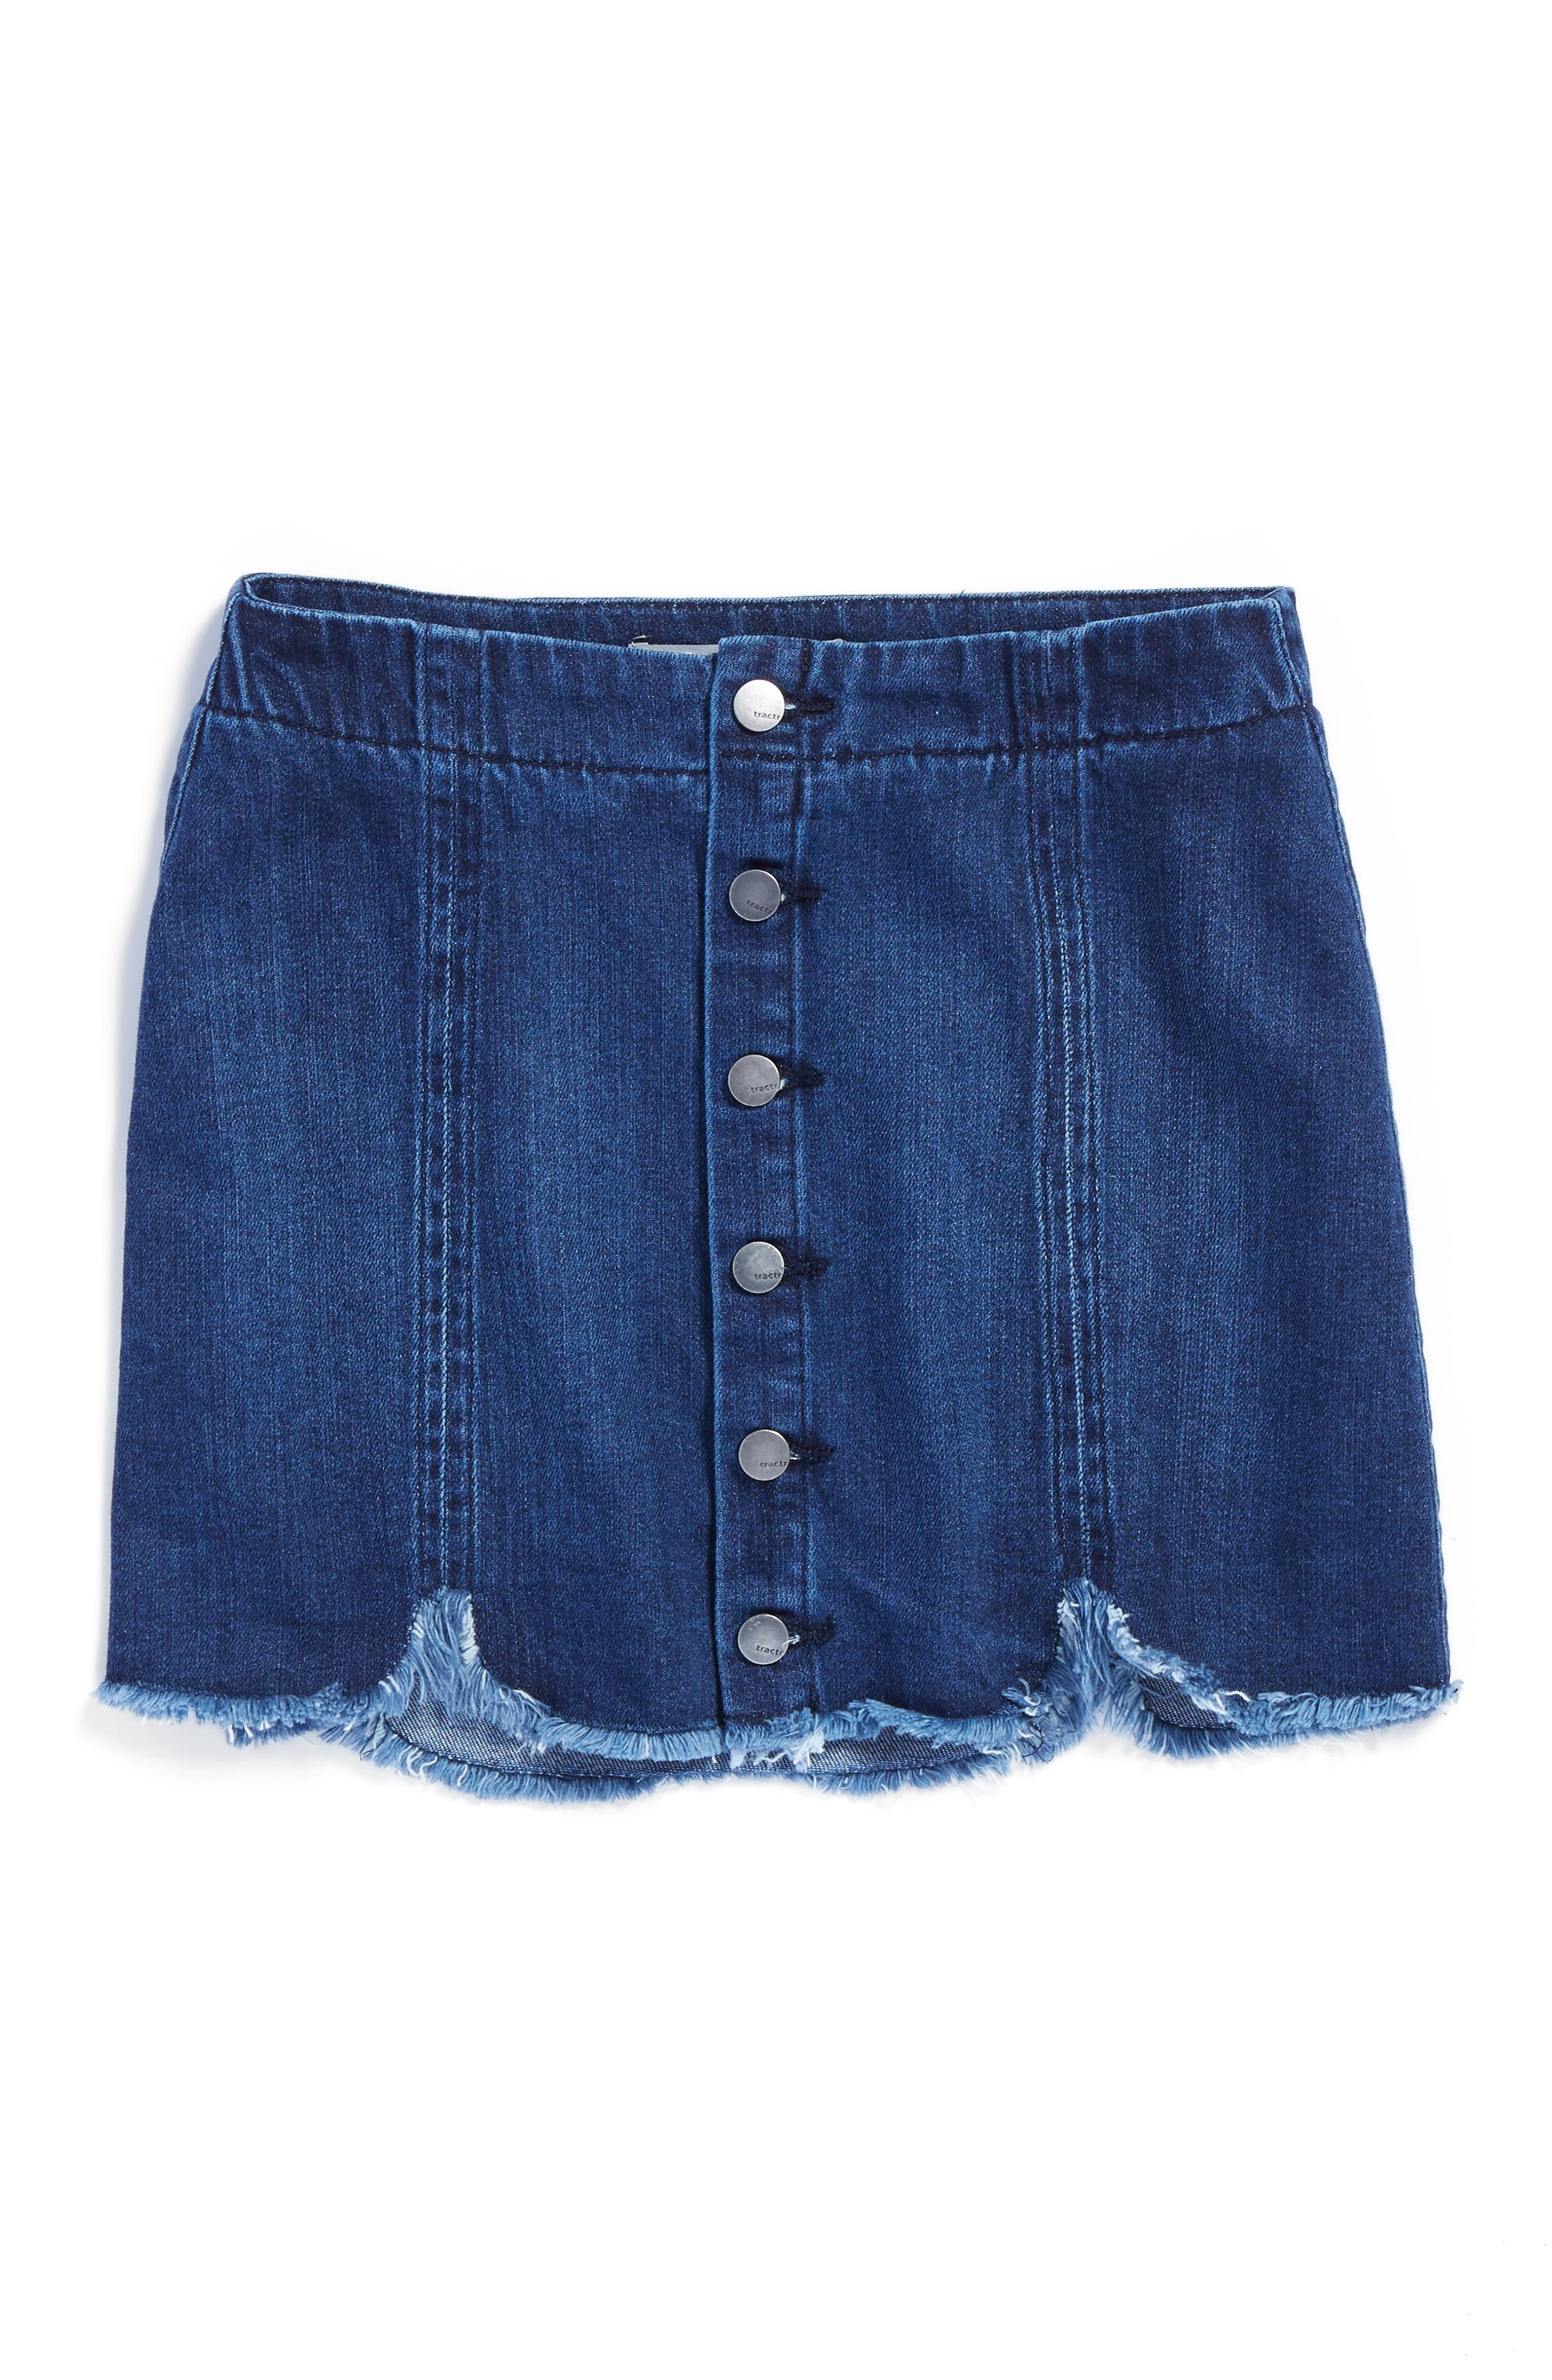 Main Image - Tractr Frayed Scallop Denim Skirt (Big Girls)